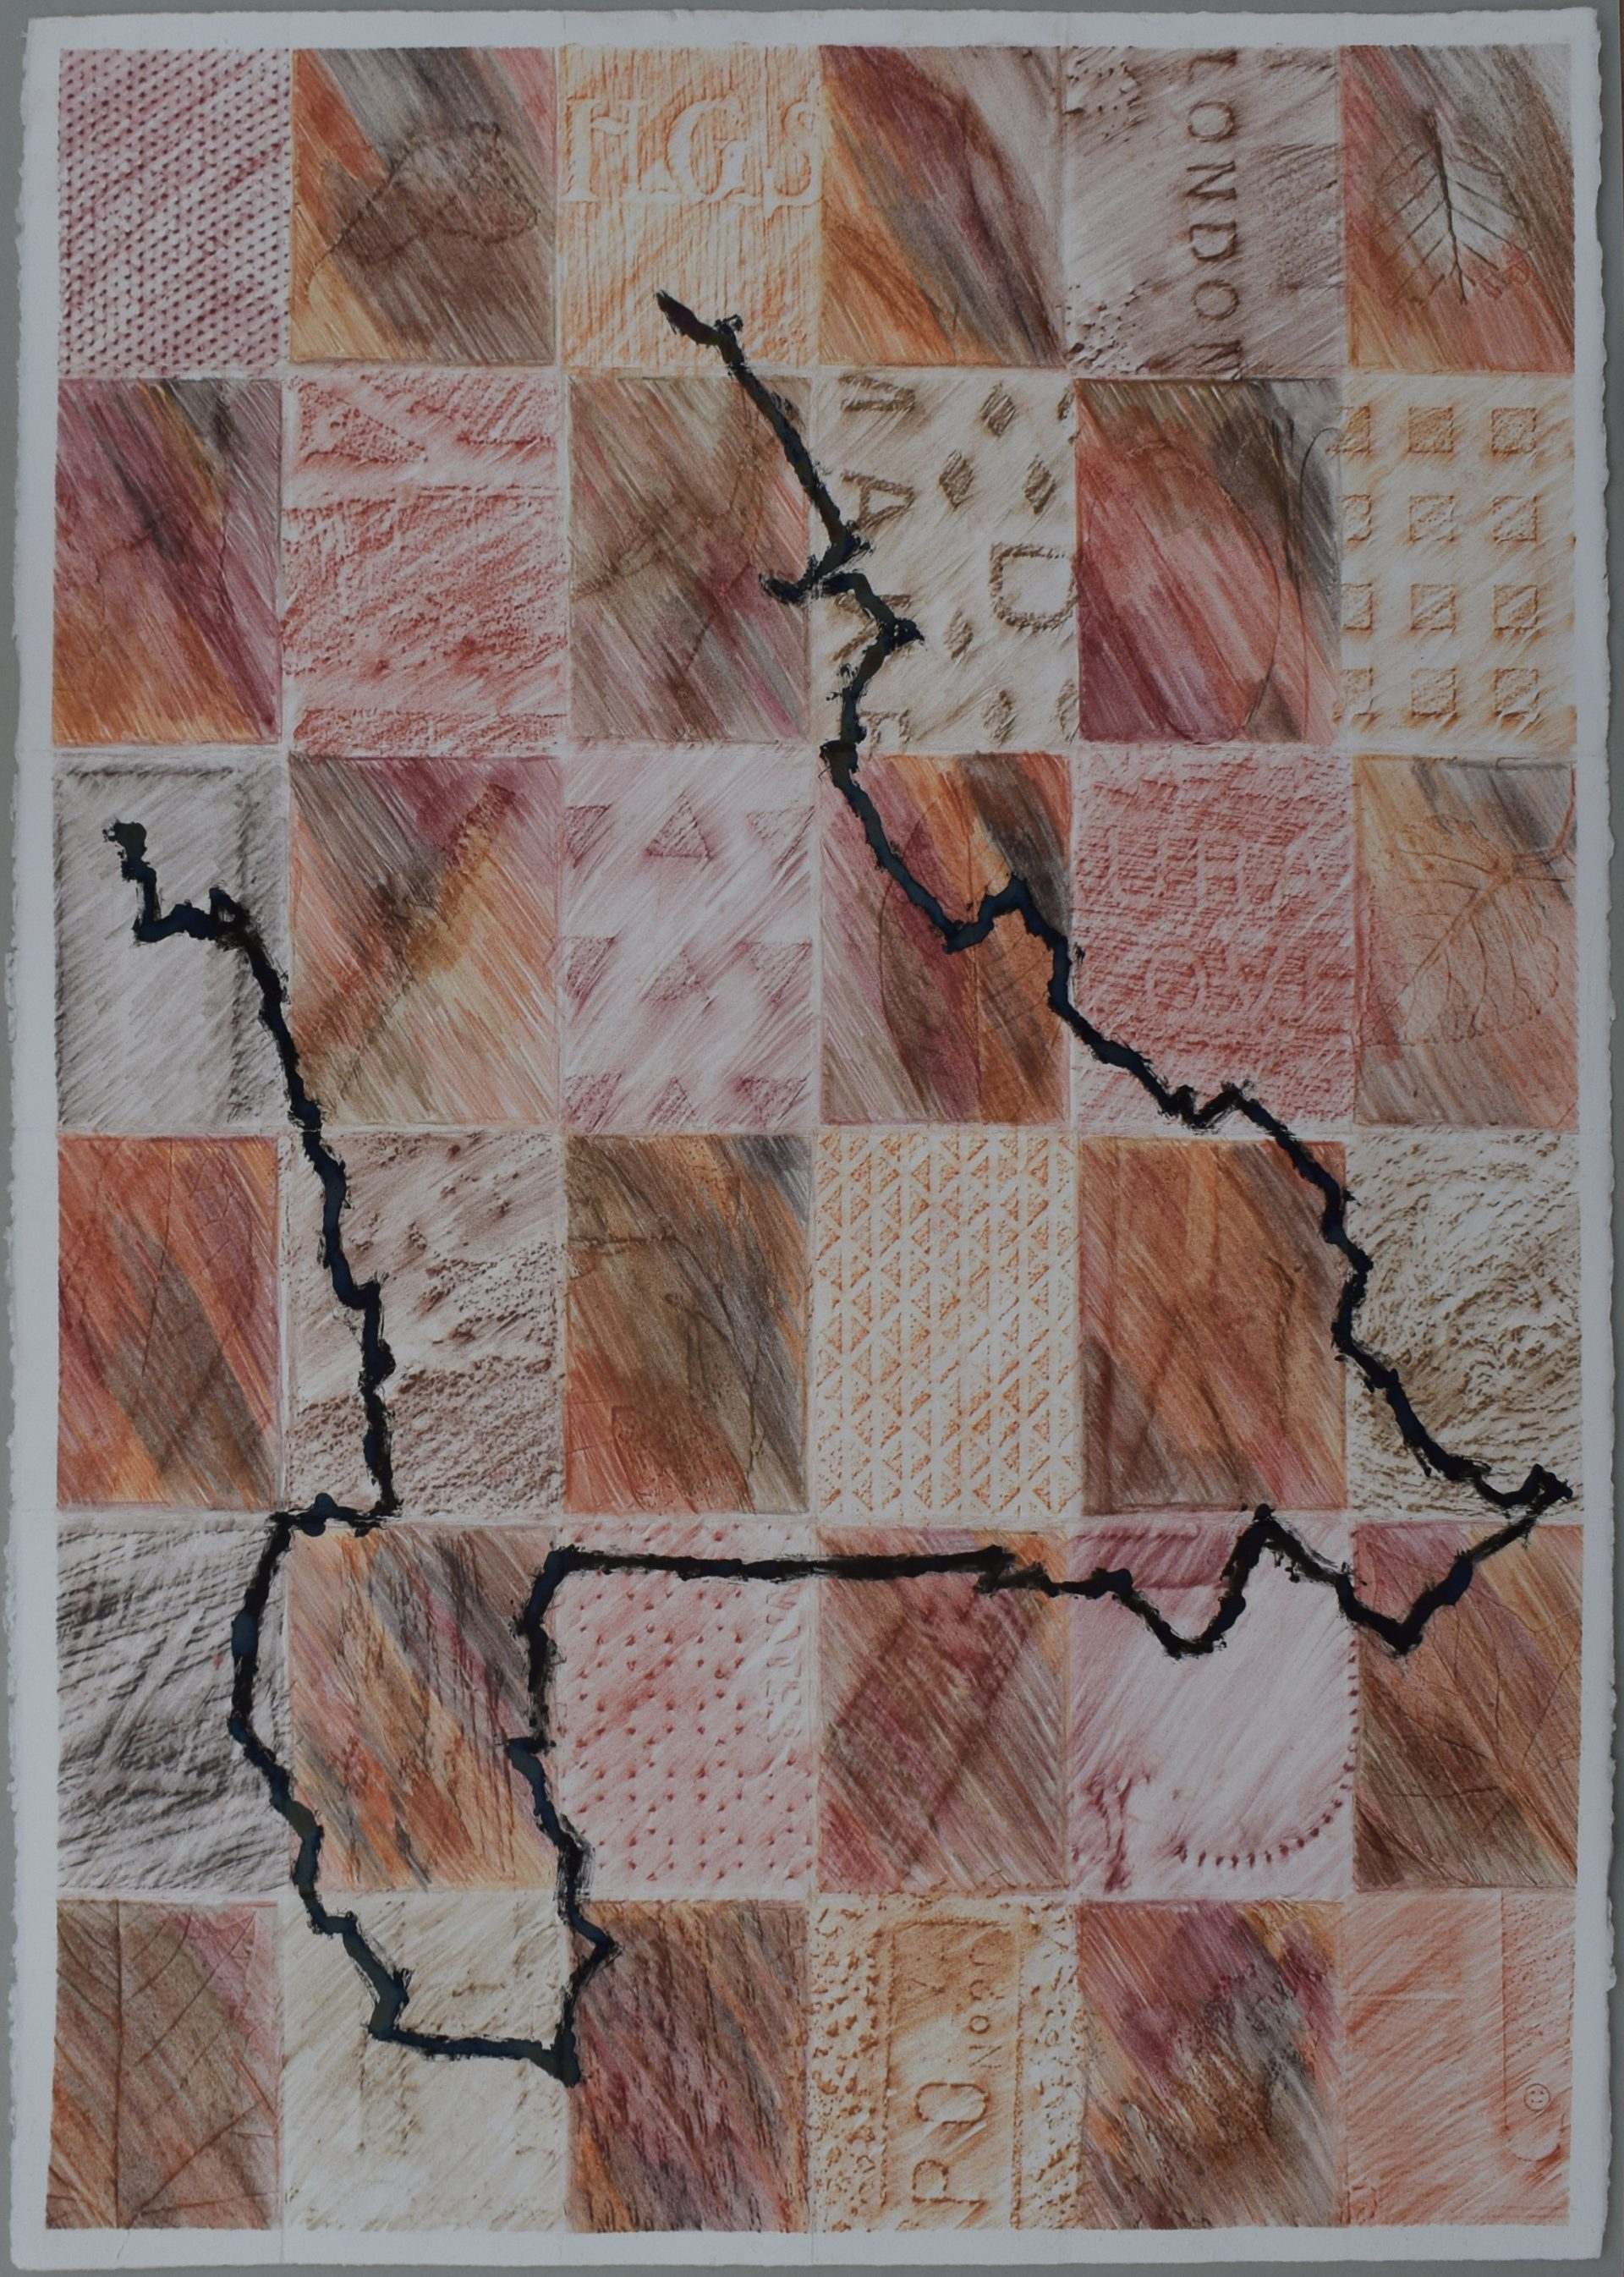 Earth-coloured rubbings on a paper folded into 12 squares. A black line appears over the squares.